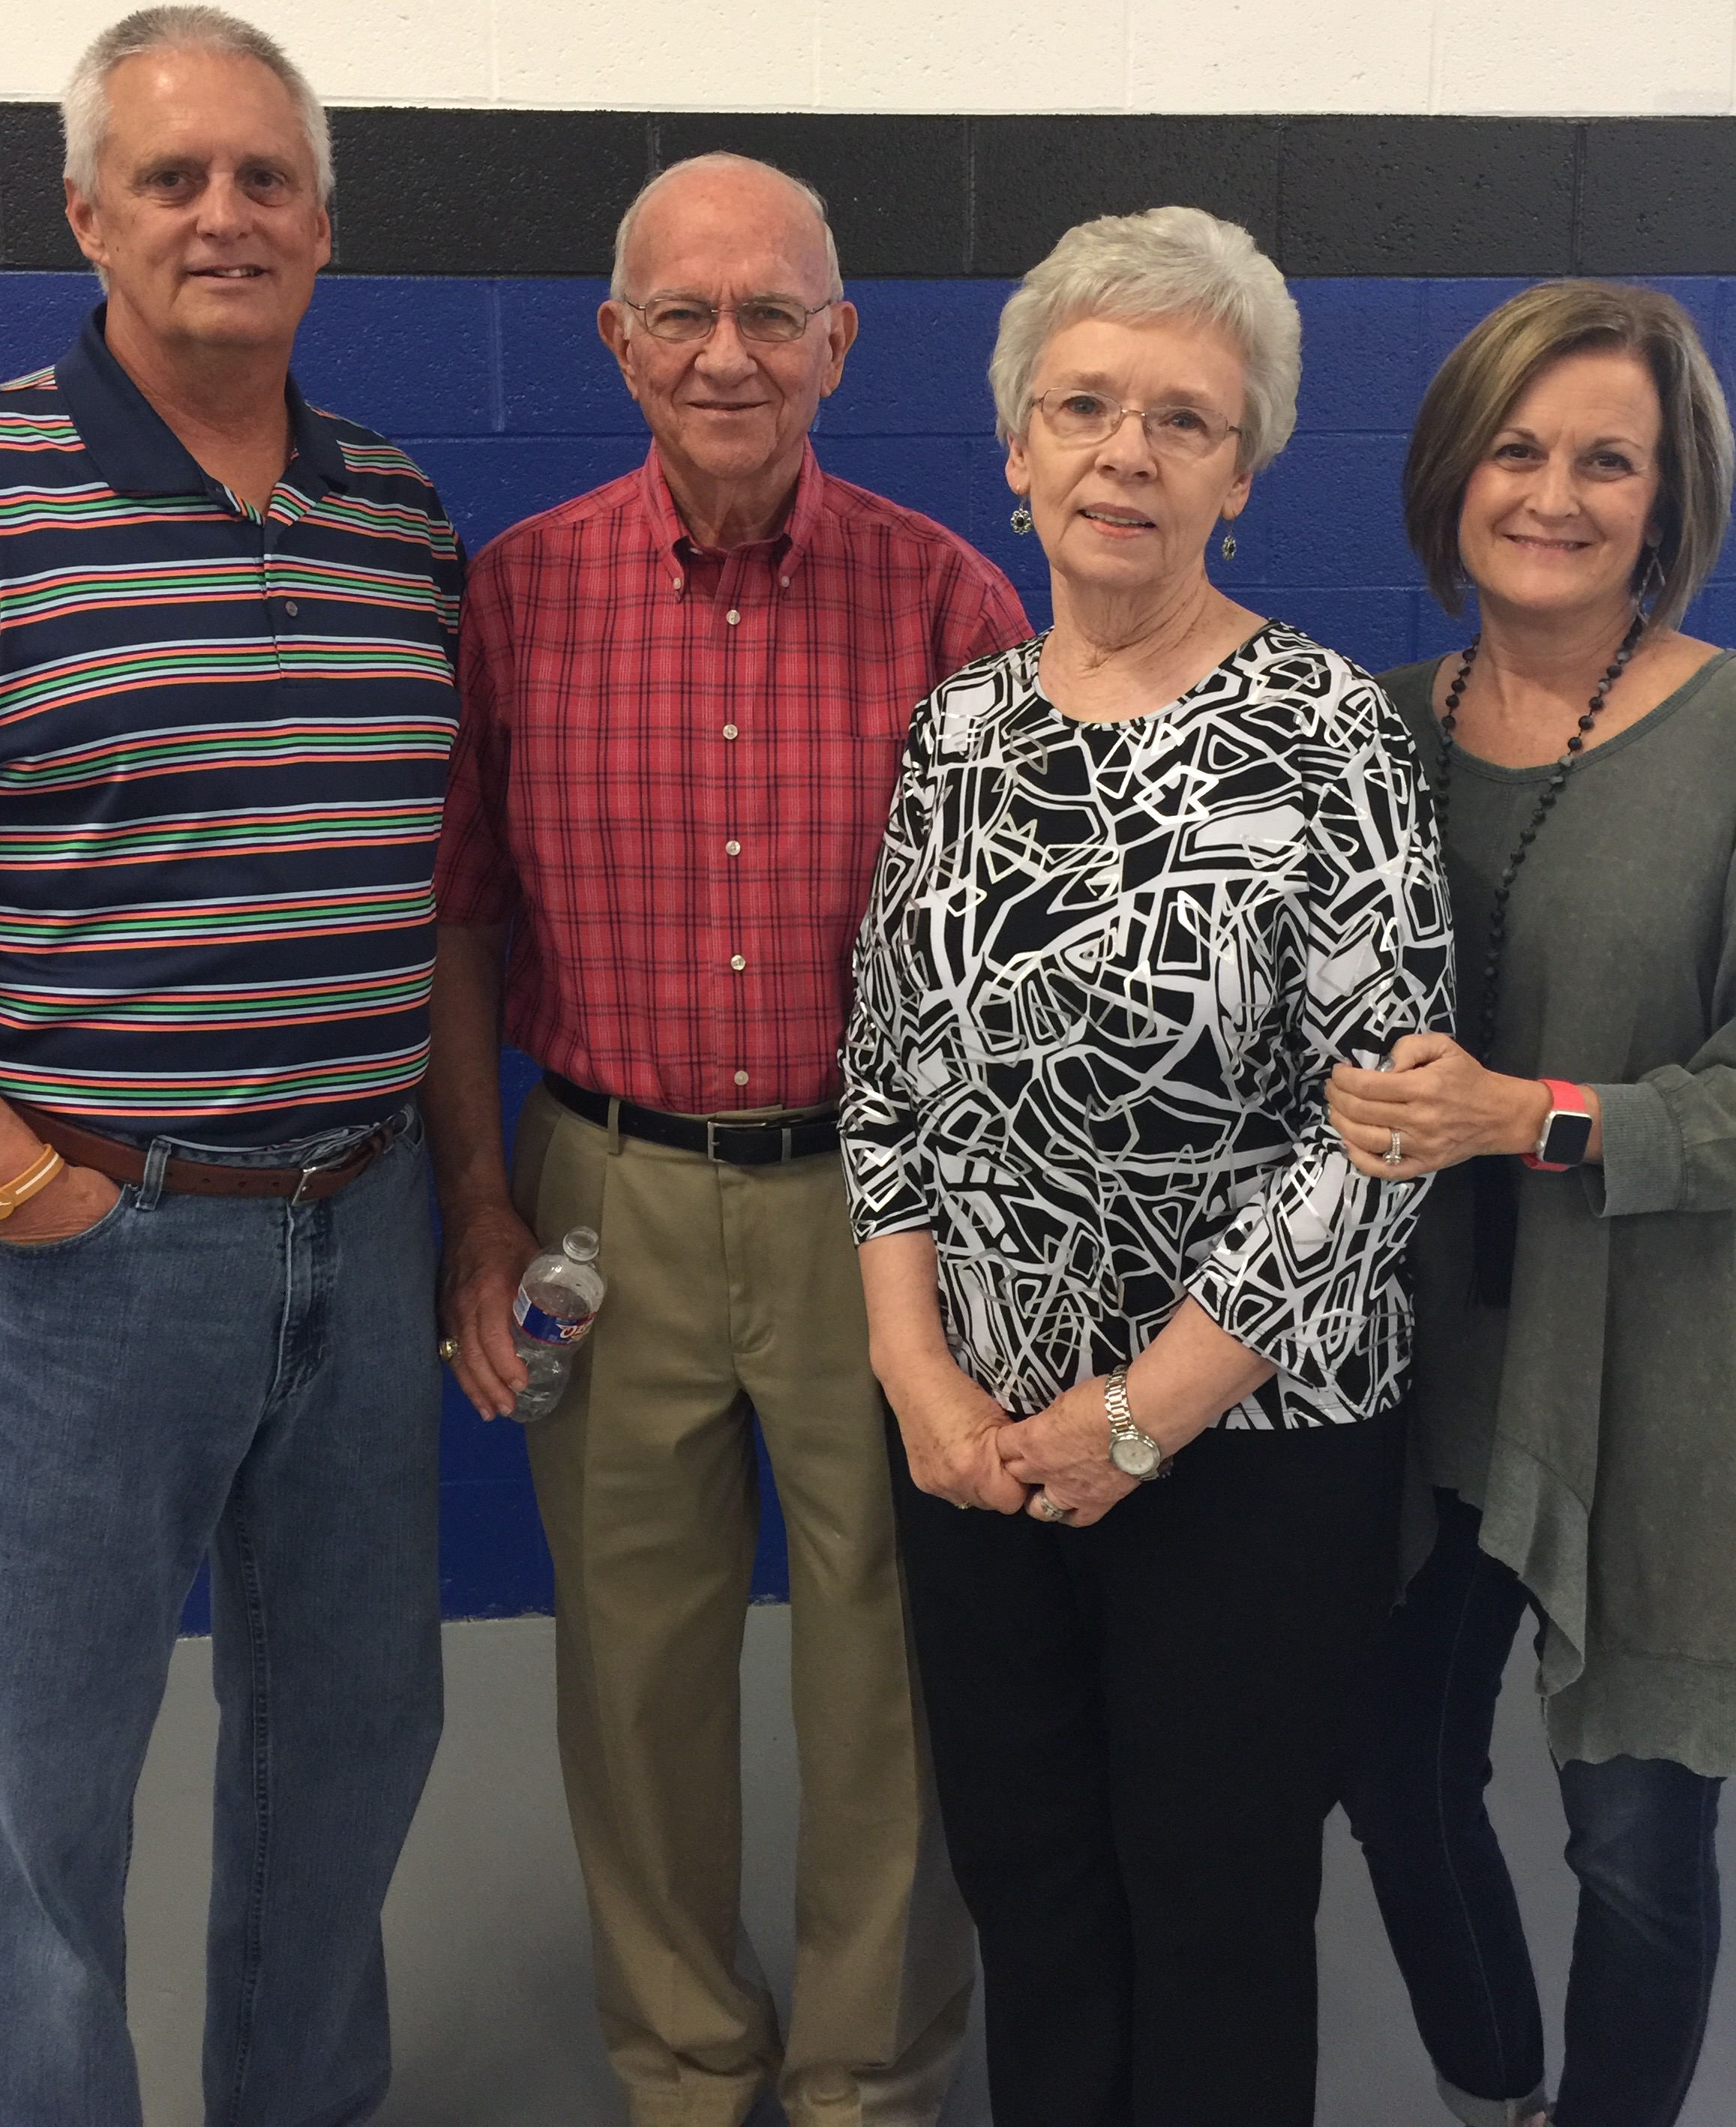 Life-long godly mentors and friends! We LOVE Coach Cook and his precious wife Susan!